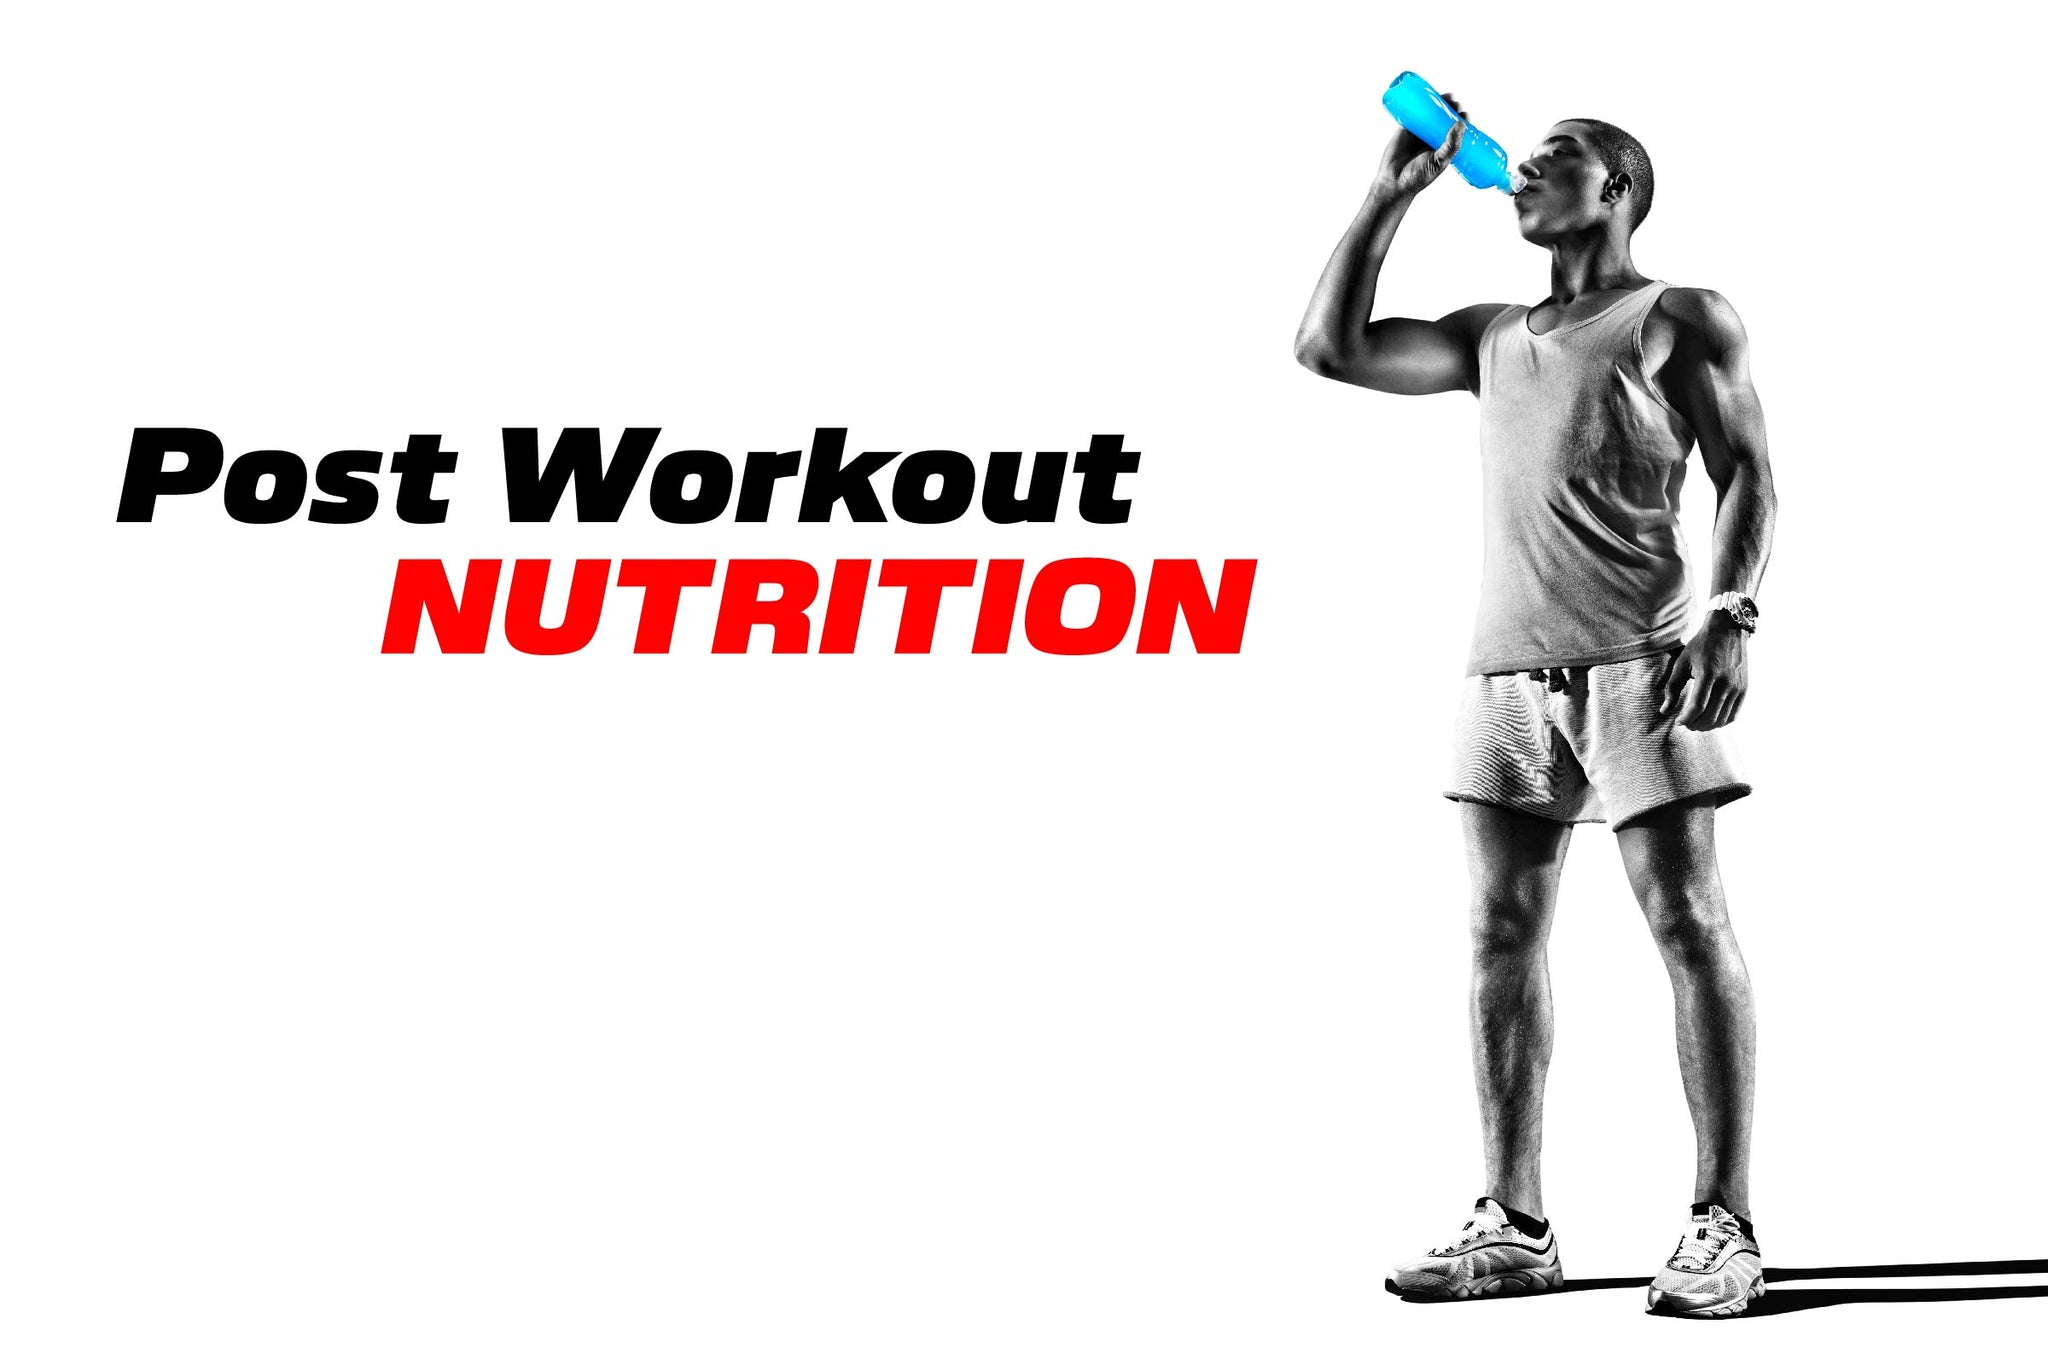 After the Gym: Your Post Workout Guide to Nutrition and Health